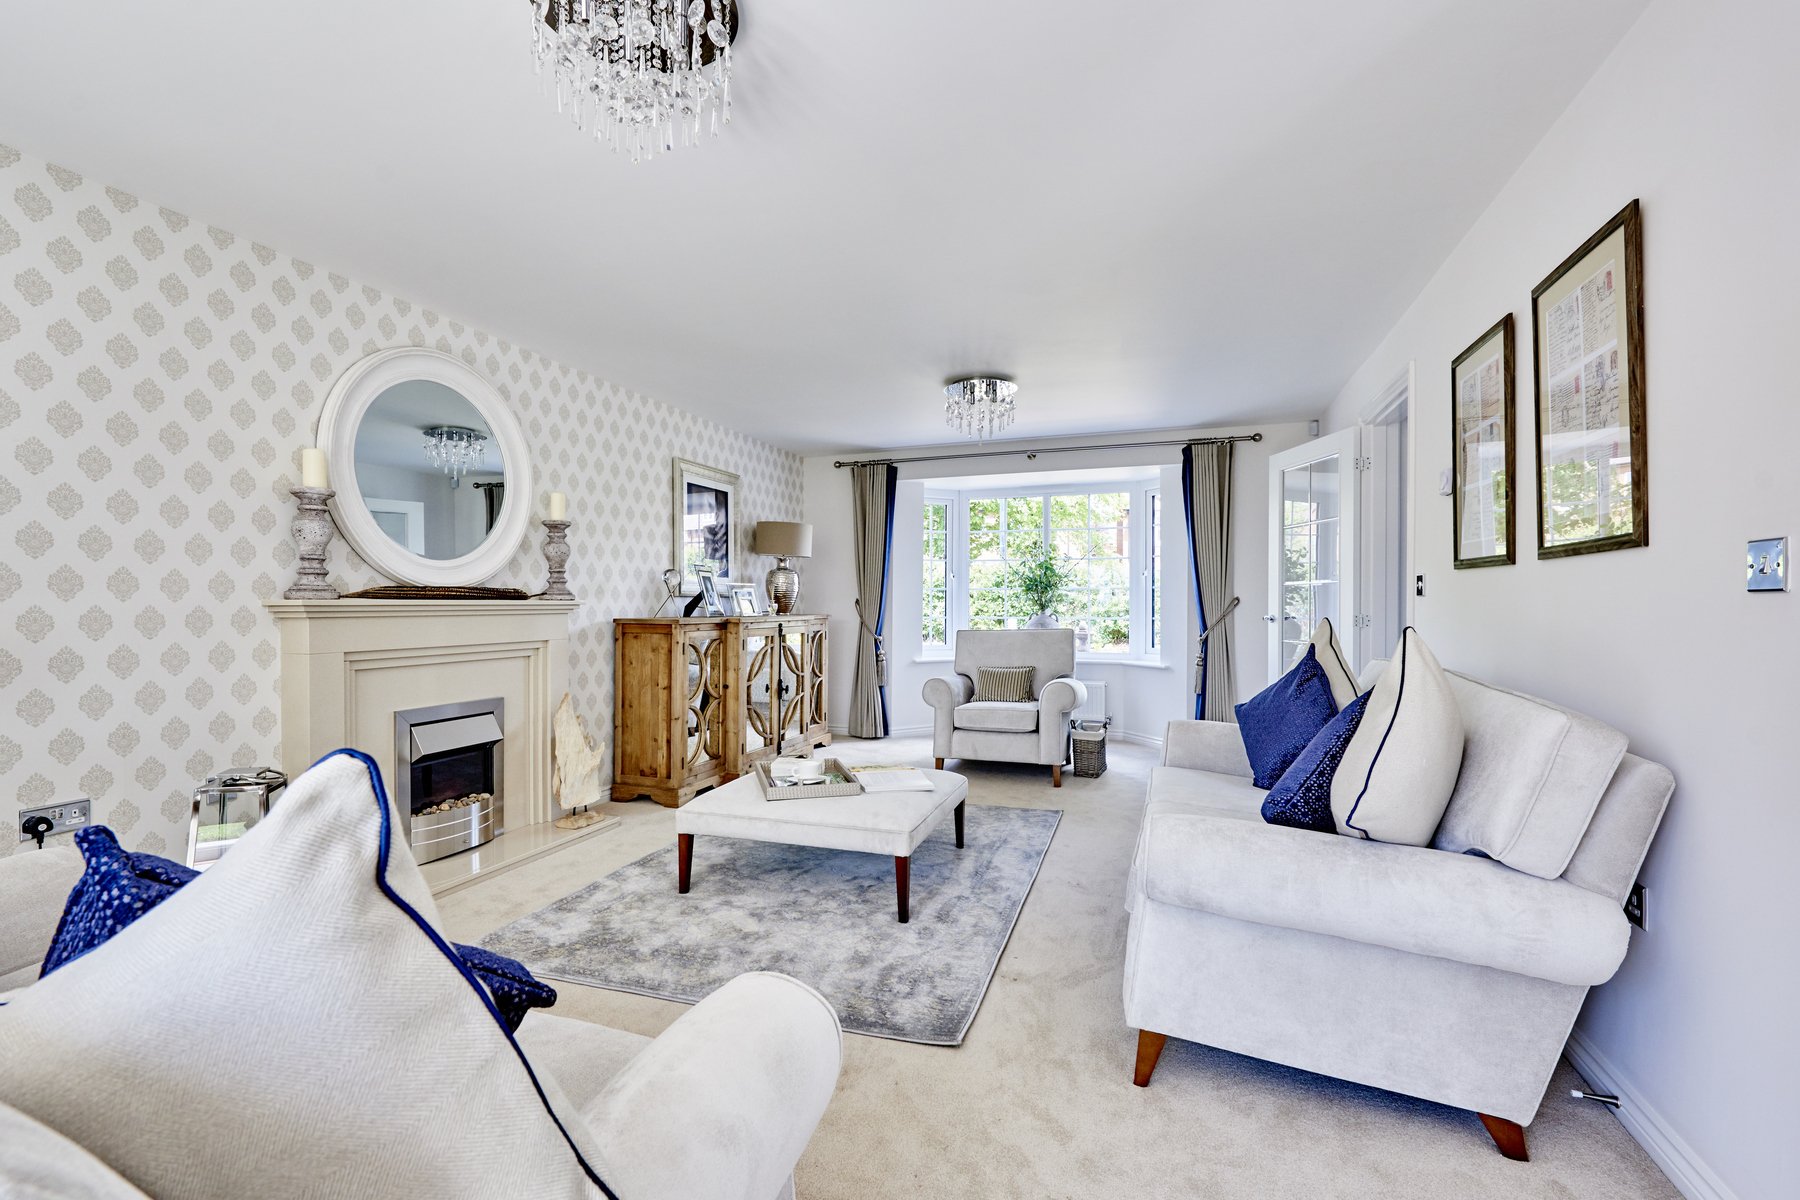 TWM_Heydon_Showhome_MidsummerPark_Stratford-upon-Avon_May2017_0020